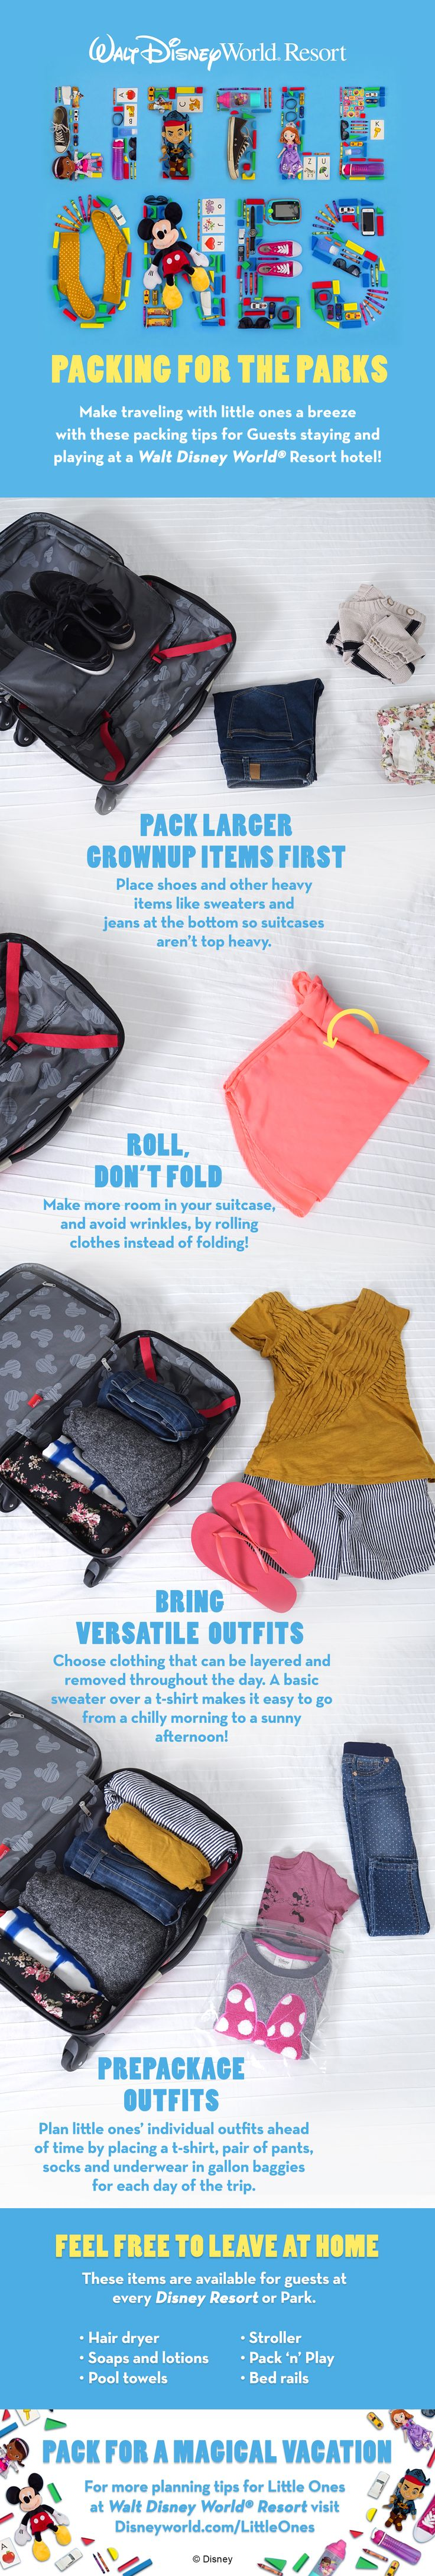 Make traveling with little ones a breeze with these packing tips for guests staying and playing at a Walt Disney World Resort hotel!